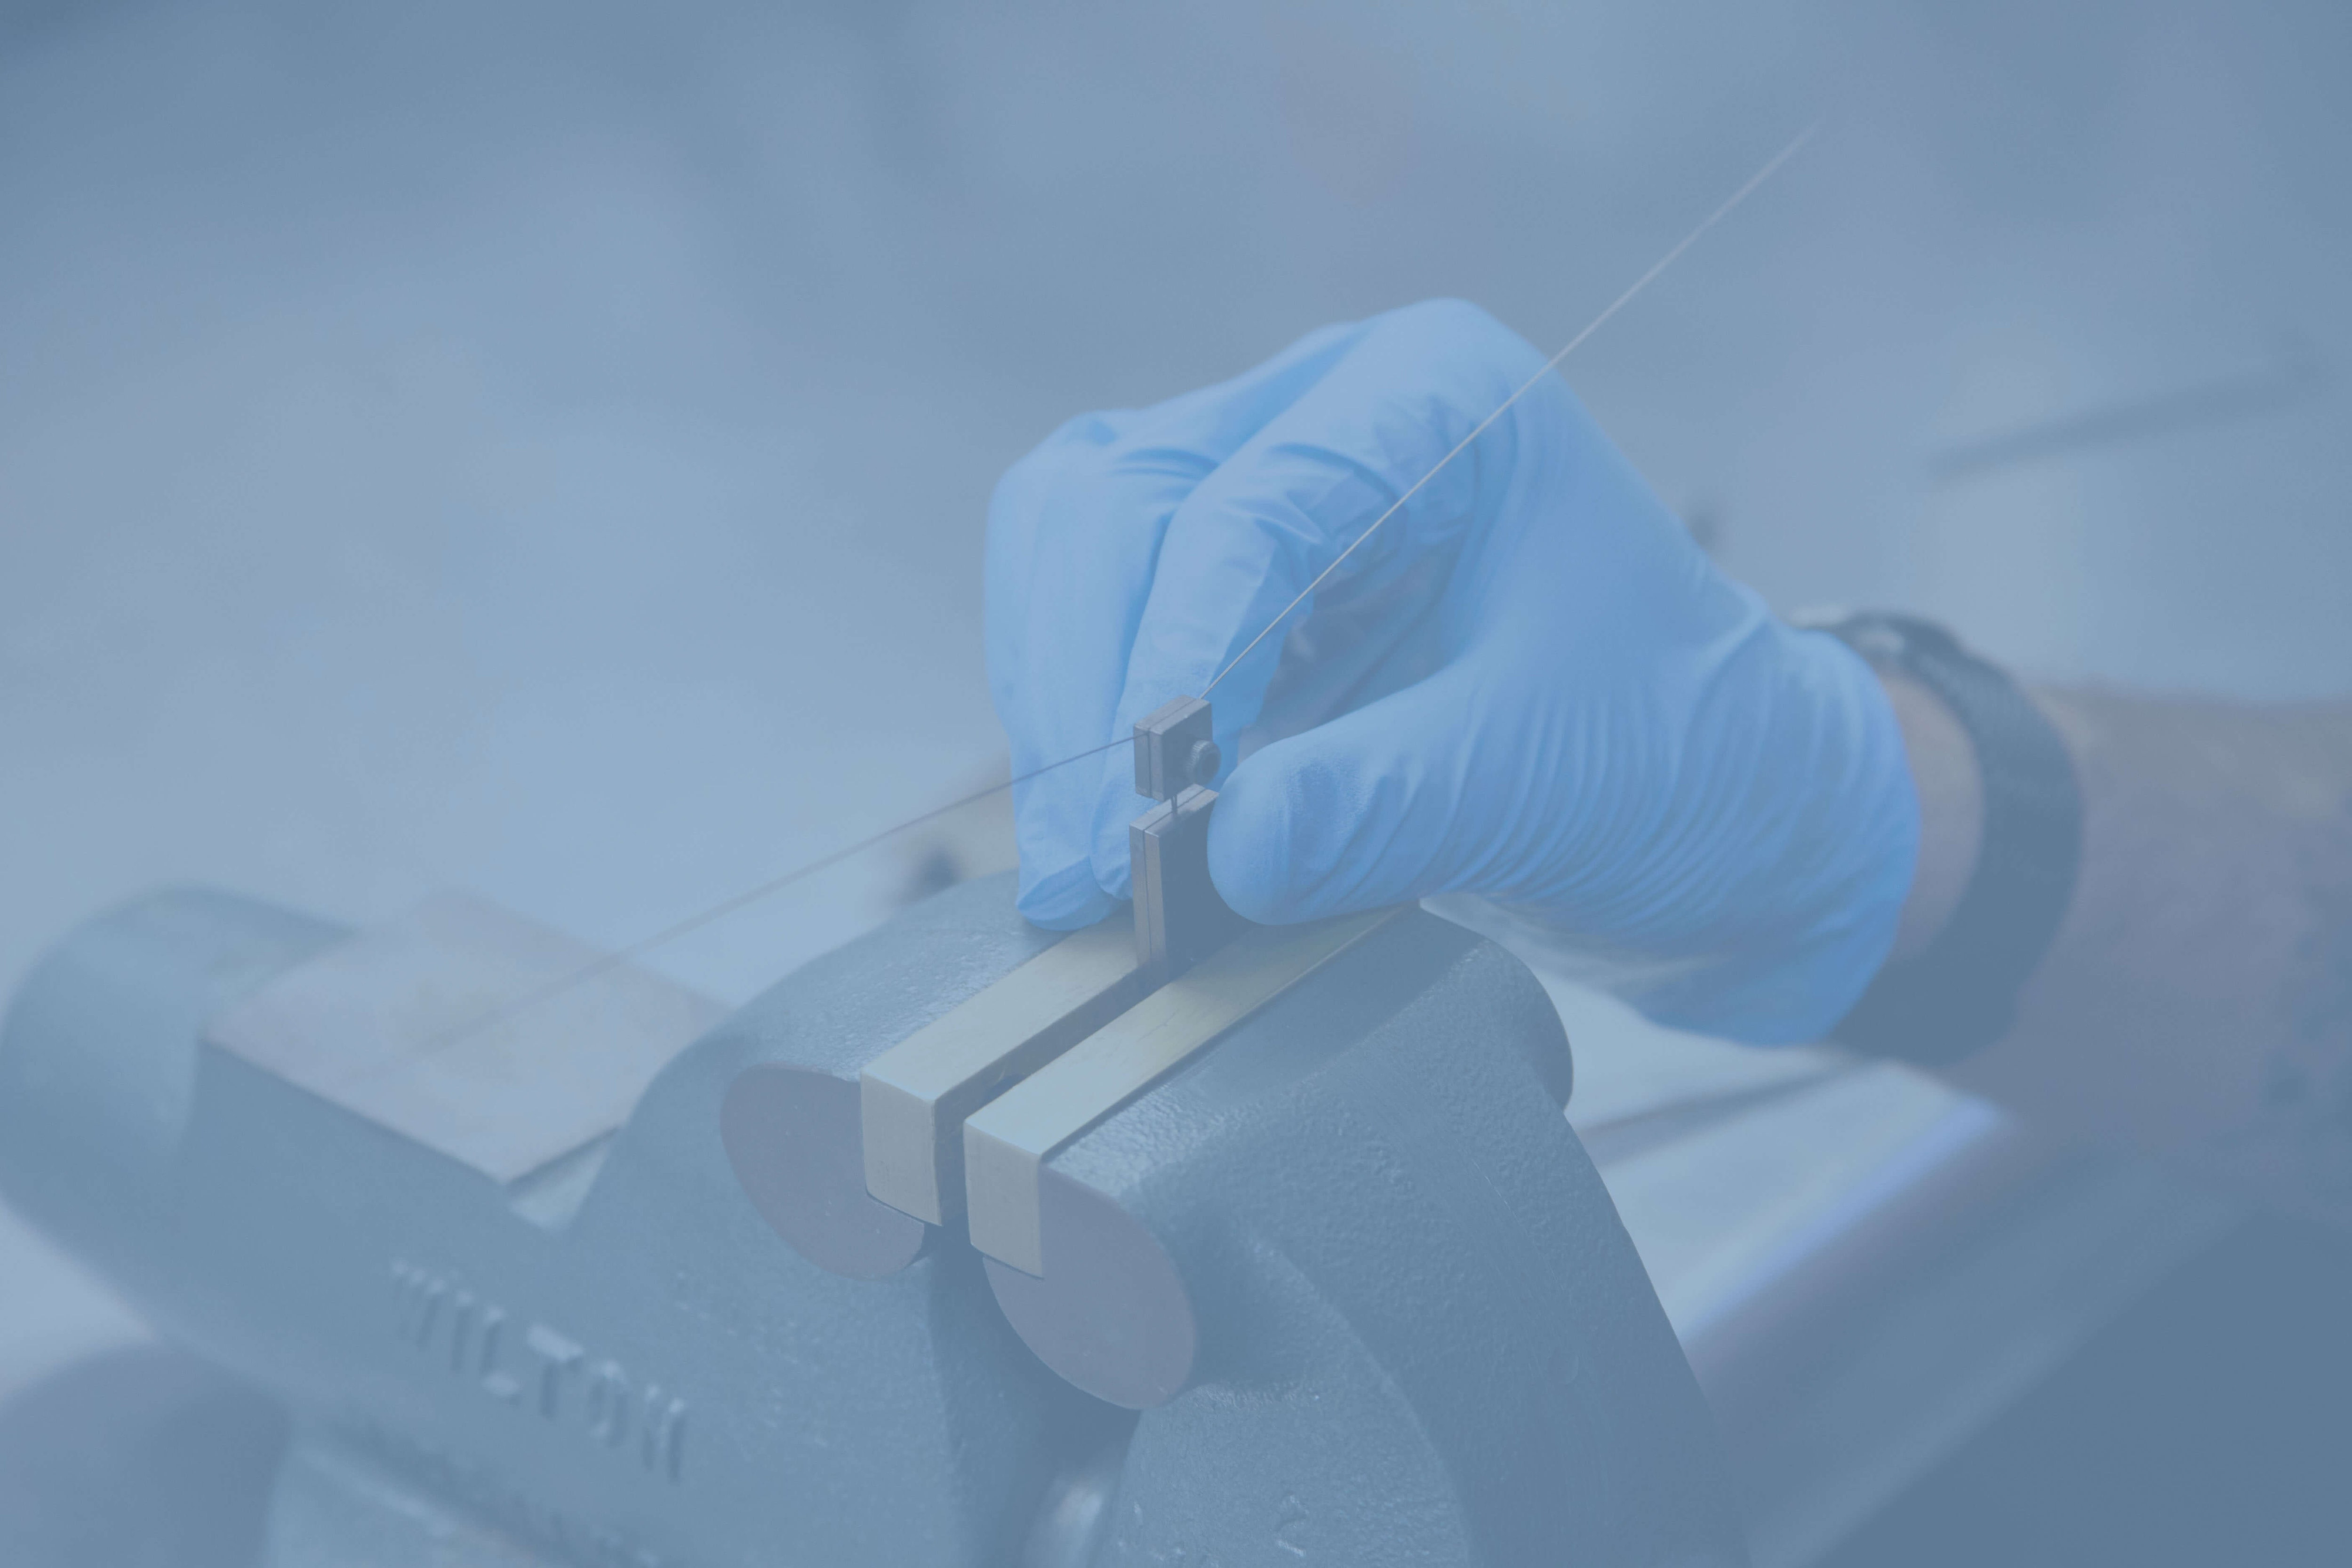 hand with a blue glove working on a medical device with a blue overlay